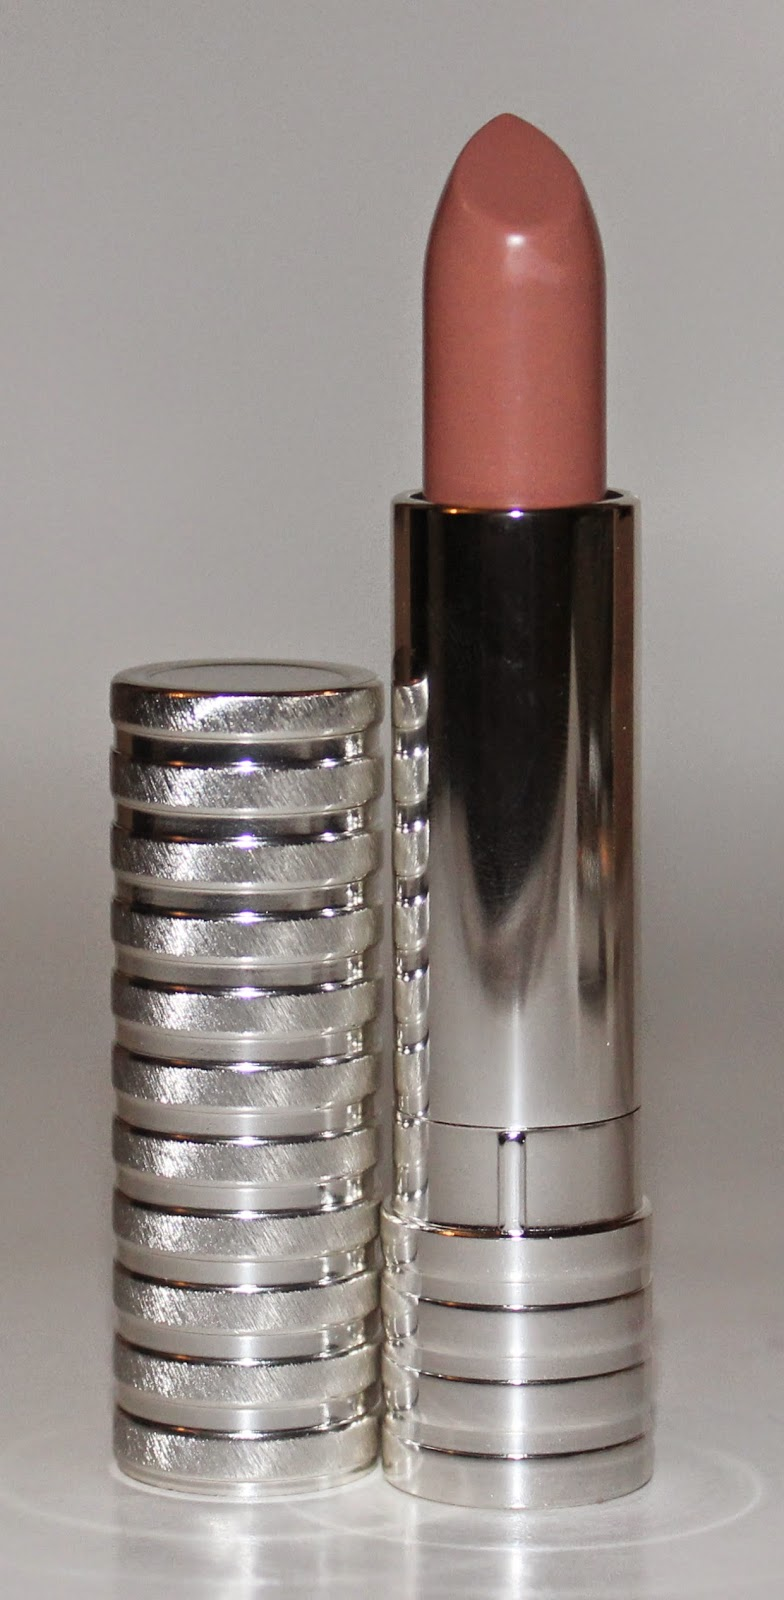 Clinique Long Last Soft Matte Lipstick Suede